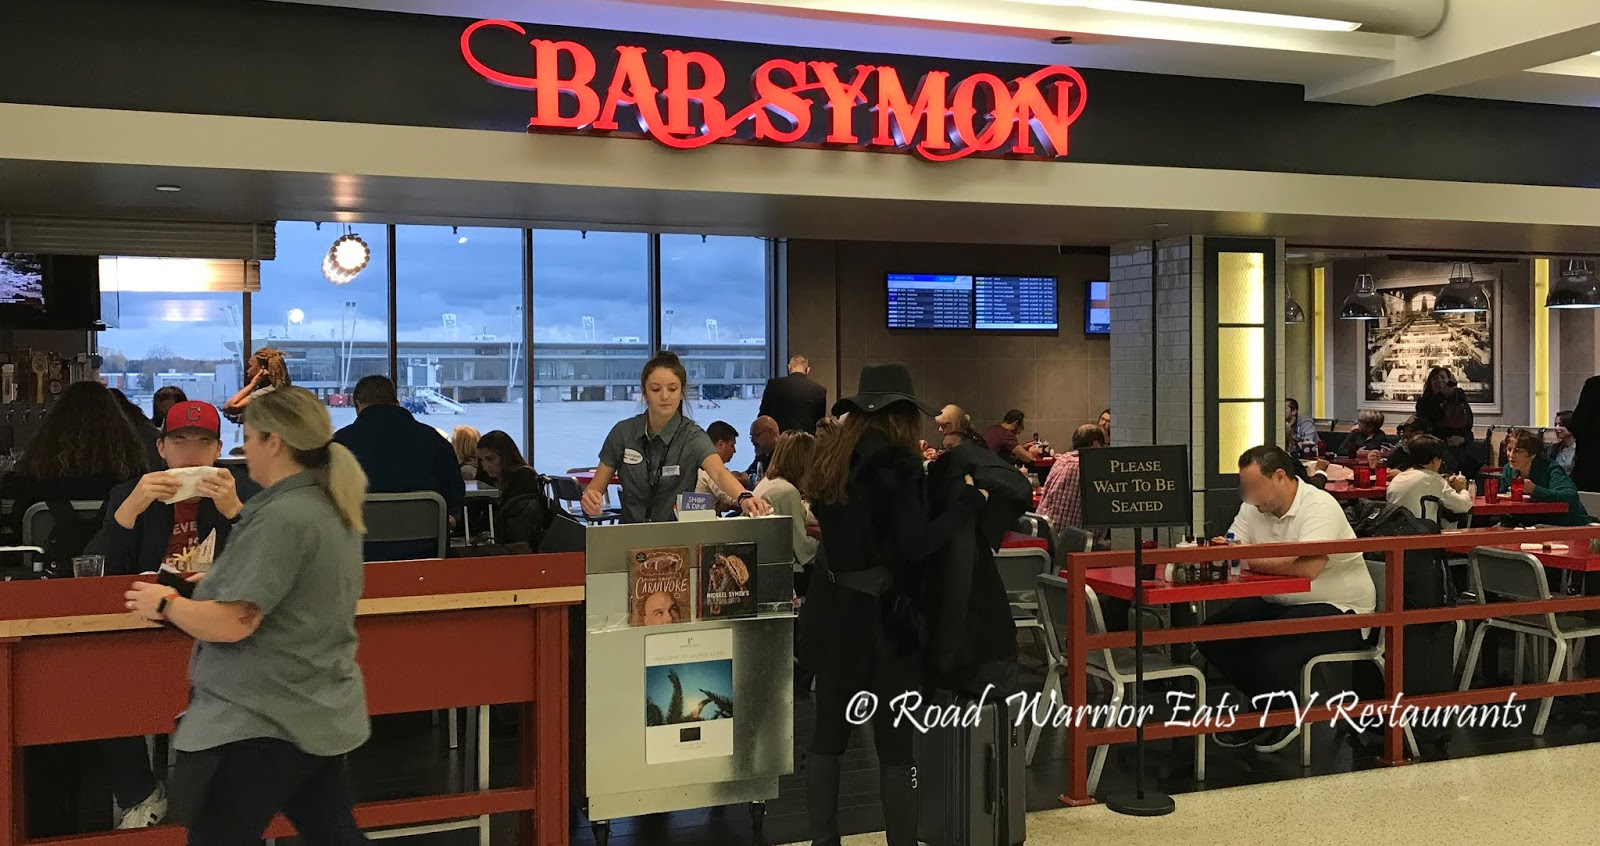 Bar Symon Cleveland Hopkins International Airport Cle Road